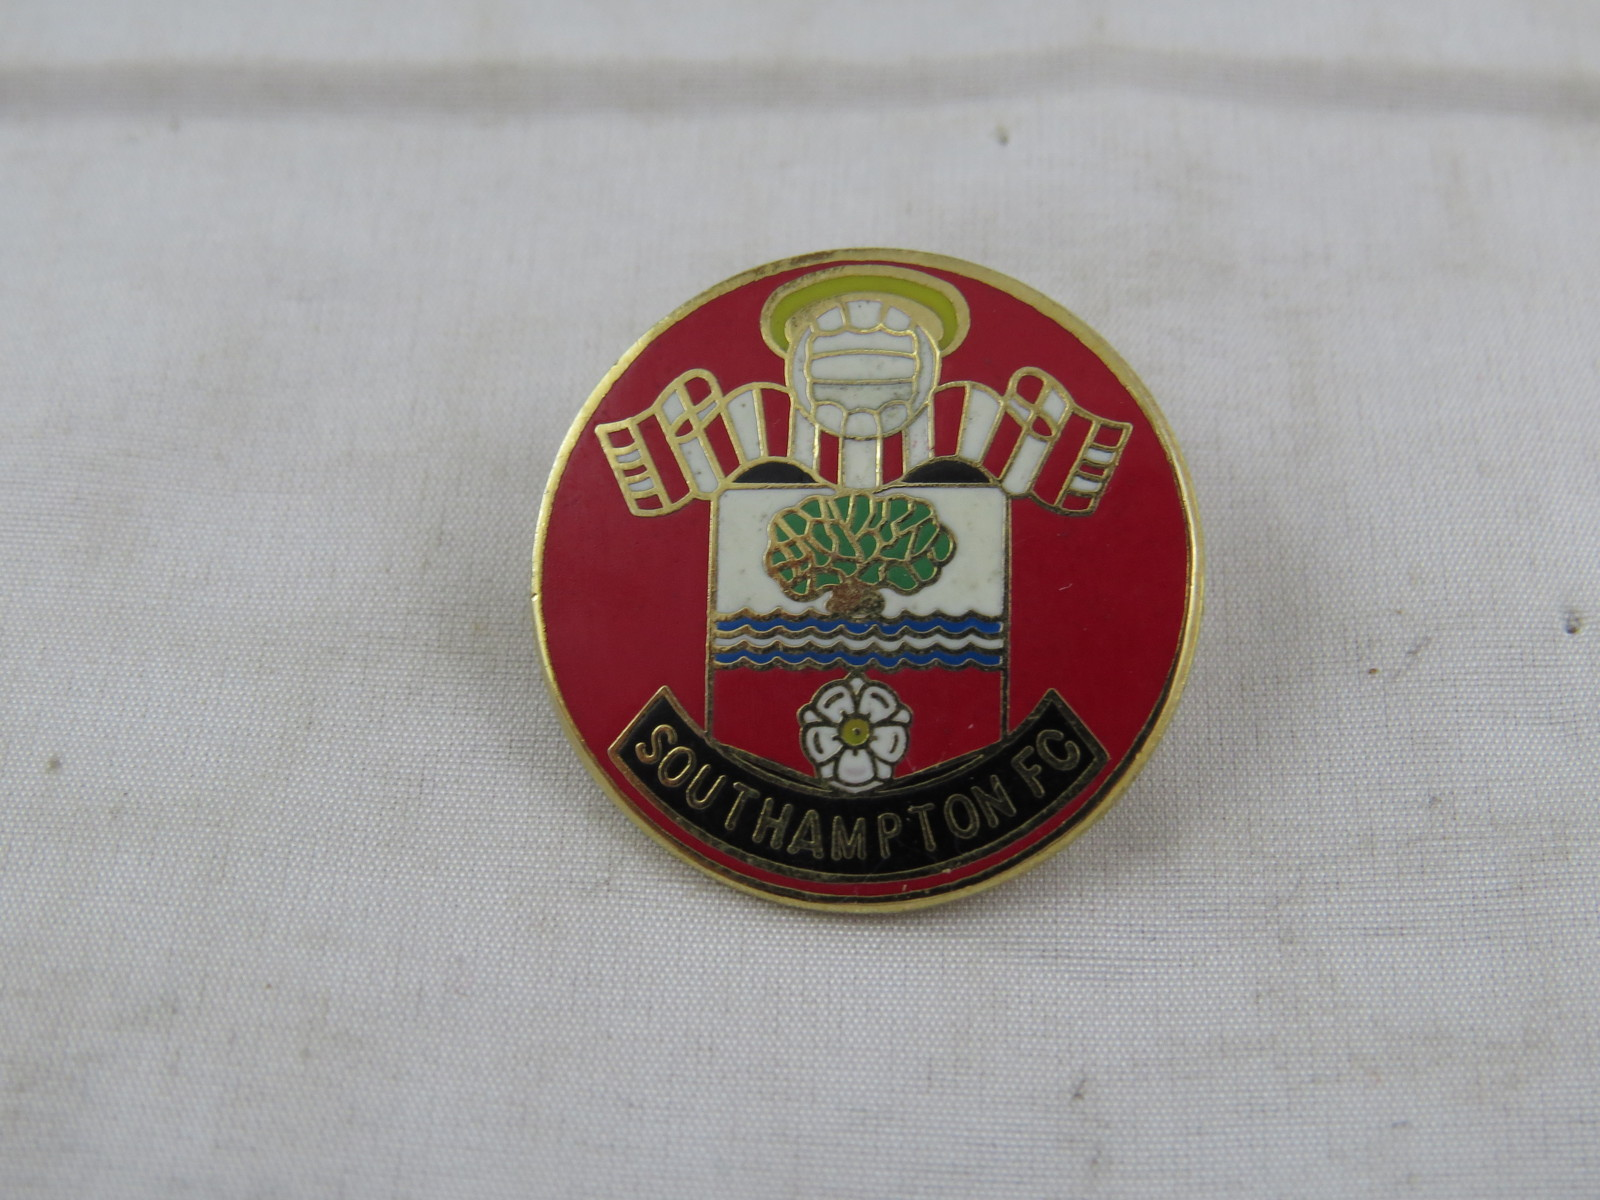 Vintage Southampton Fc Pin - Featuring Team Crest - Inlaid Pin